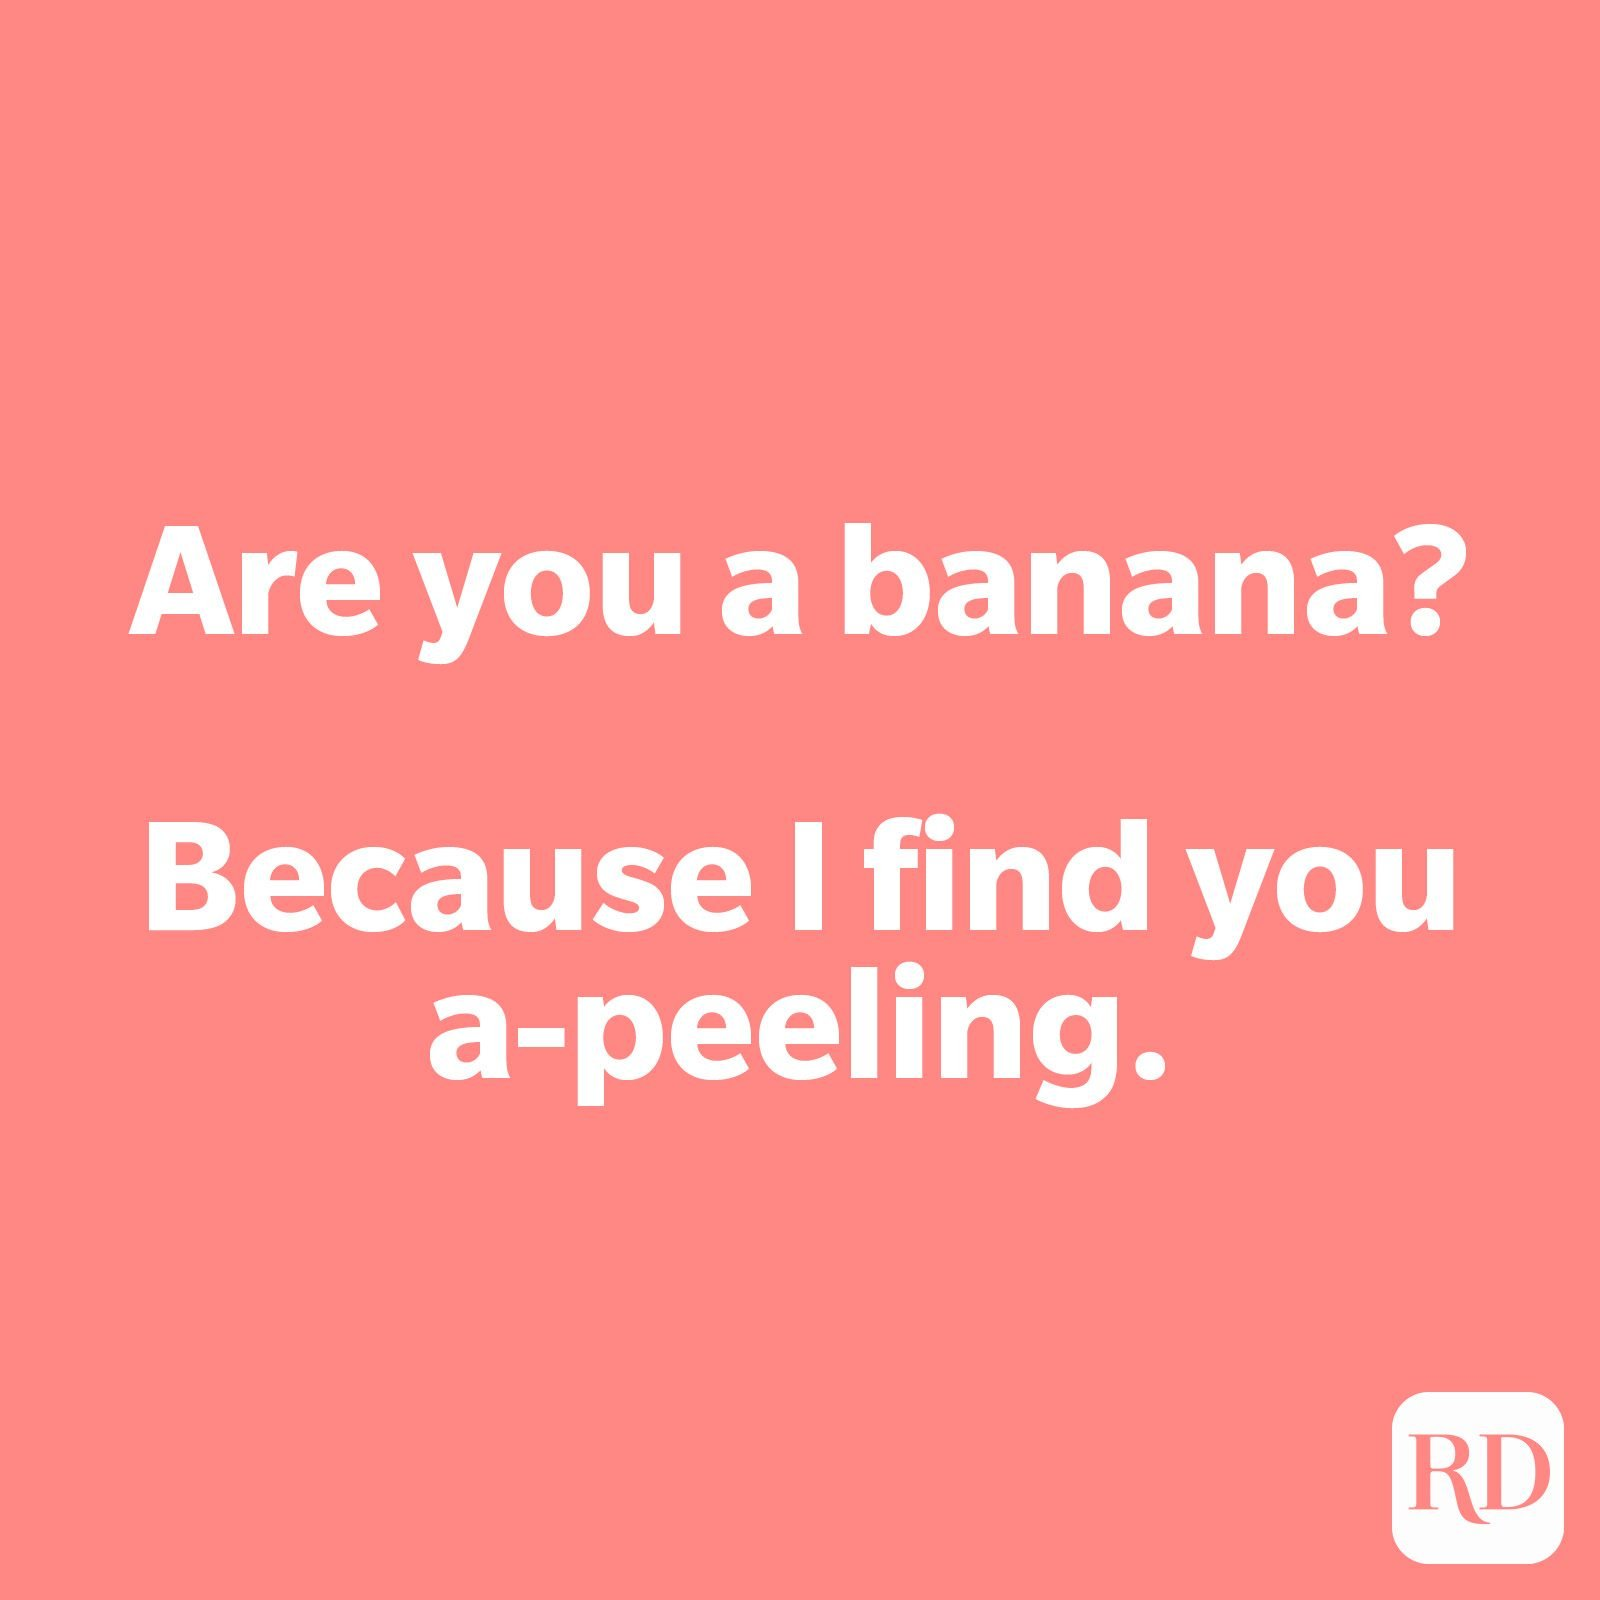 Are you a banana? Because I find you a-peeling.